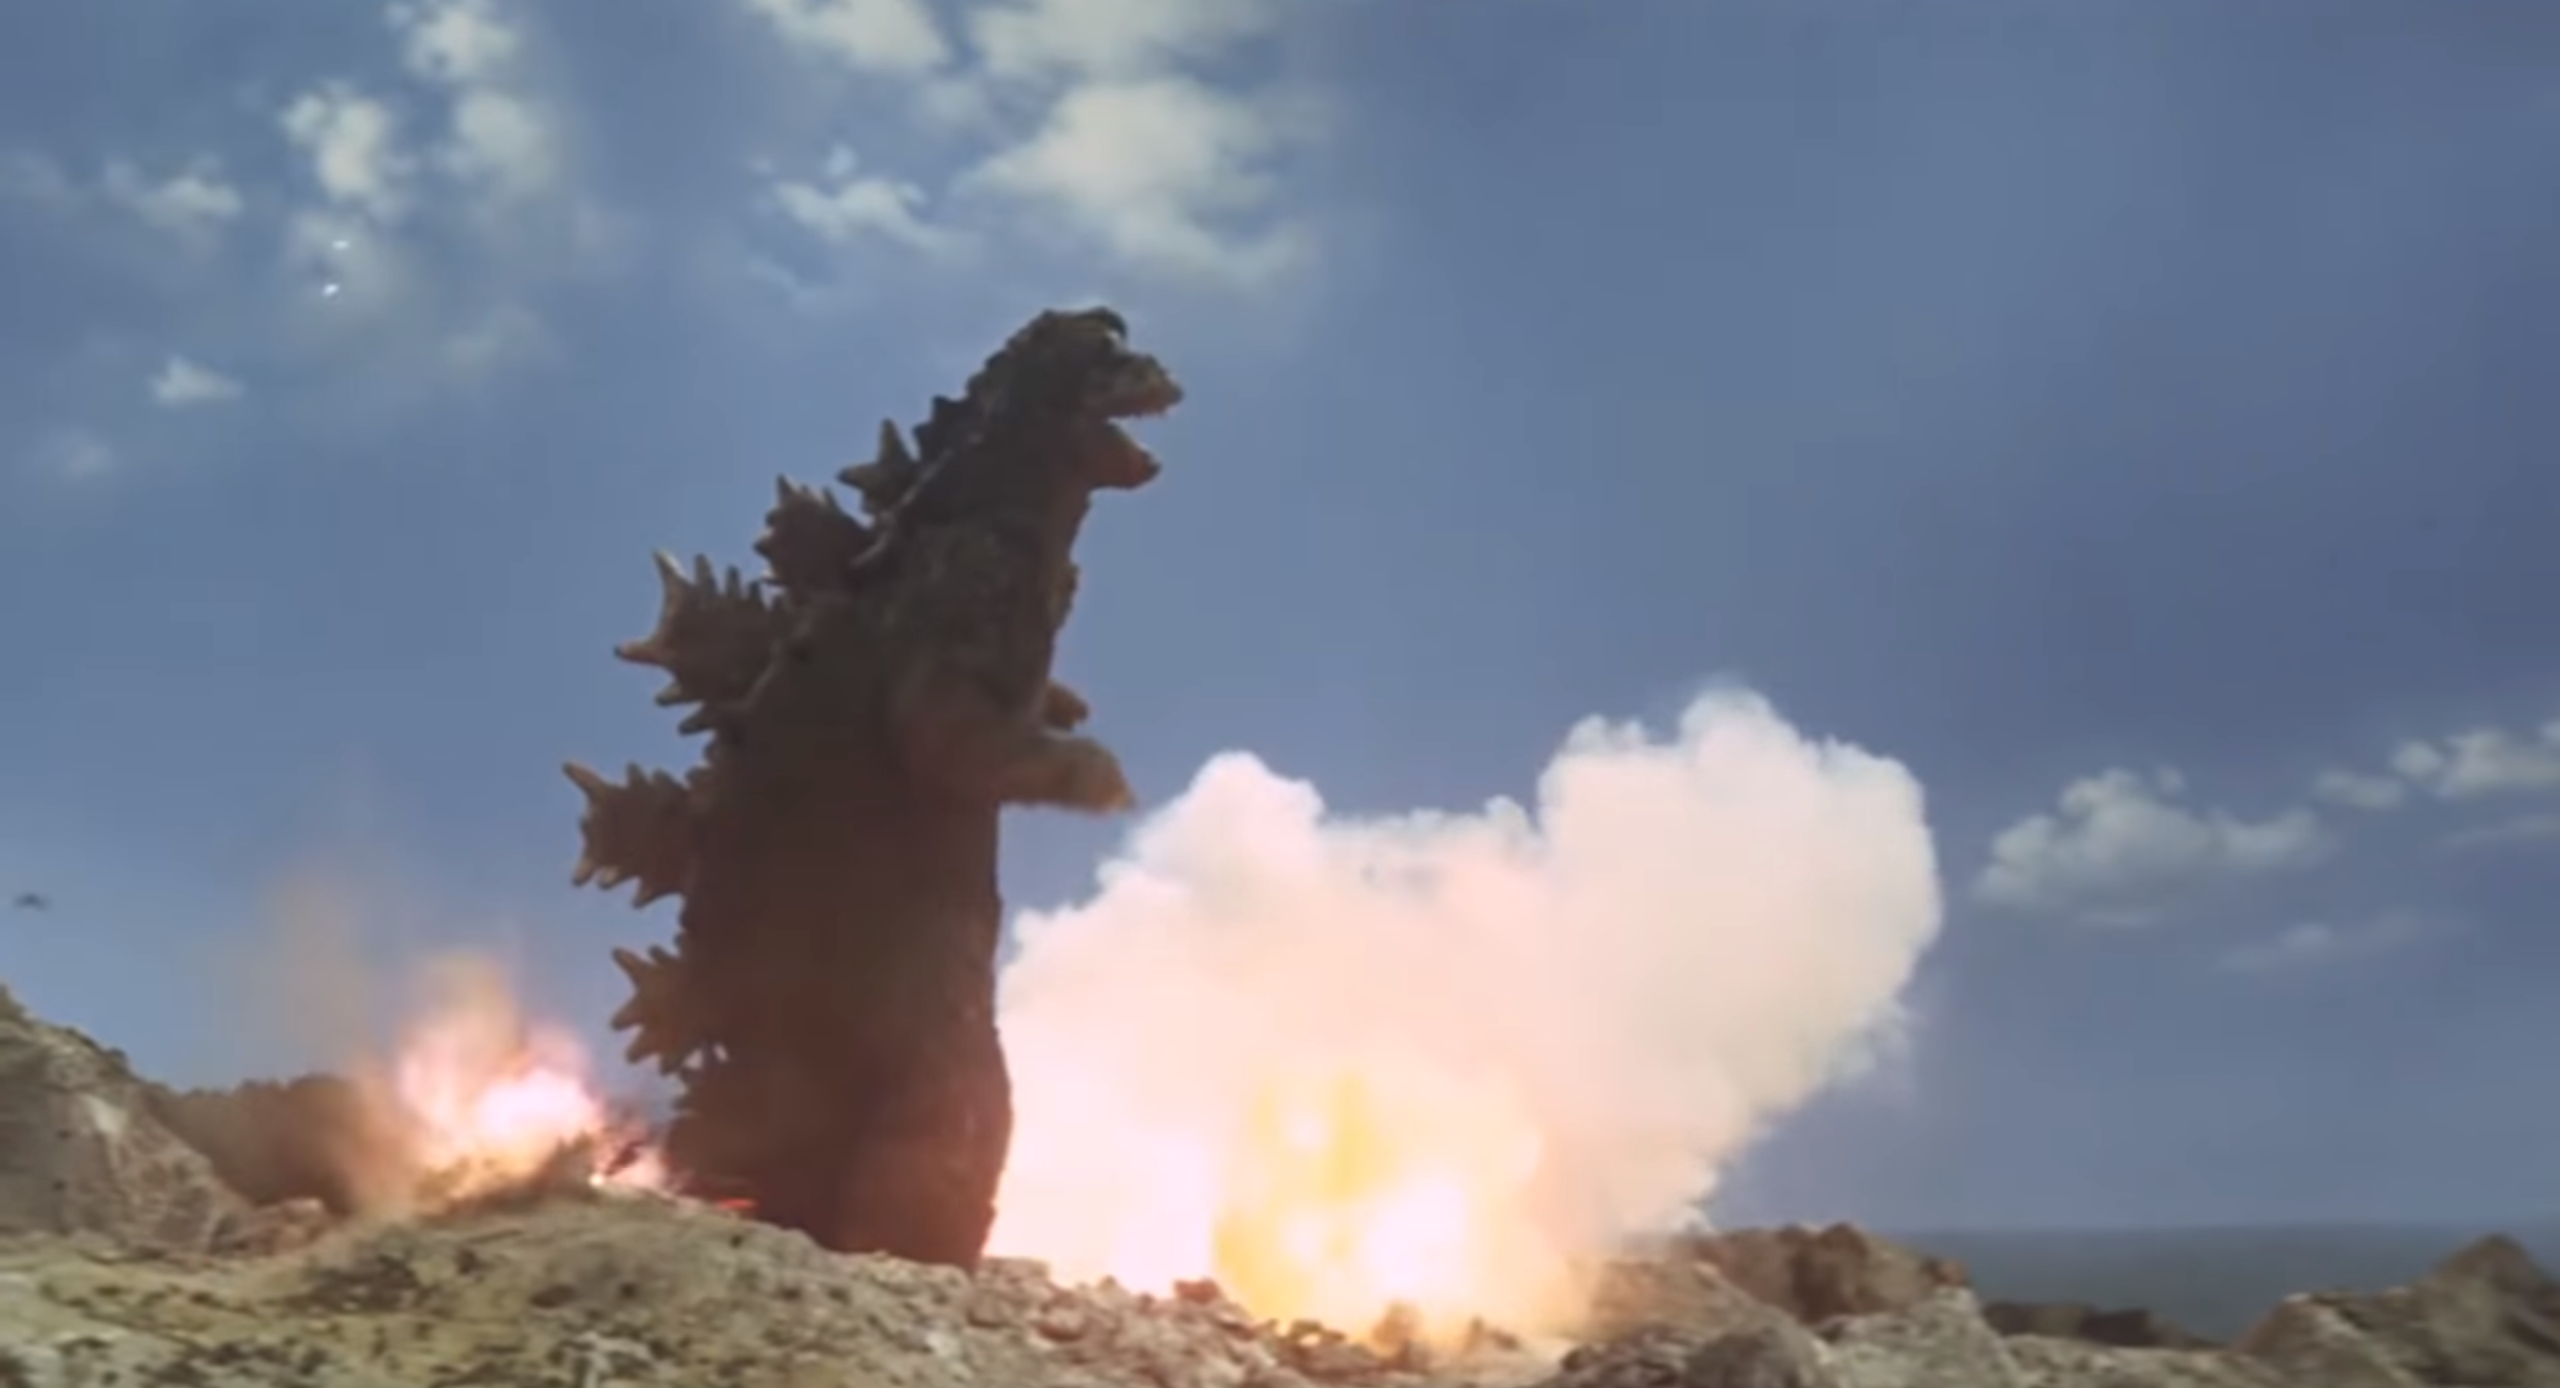 Old School Kaiju Icons Collide In This Retro Re-Imagining Of The Godzilla: King Of The Monsters Trailer